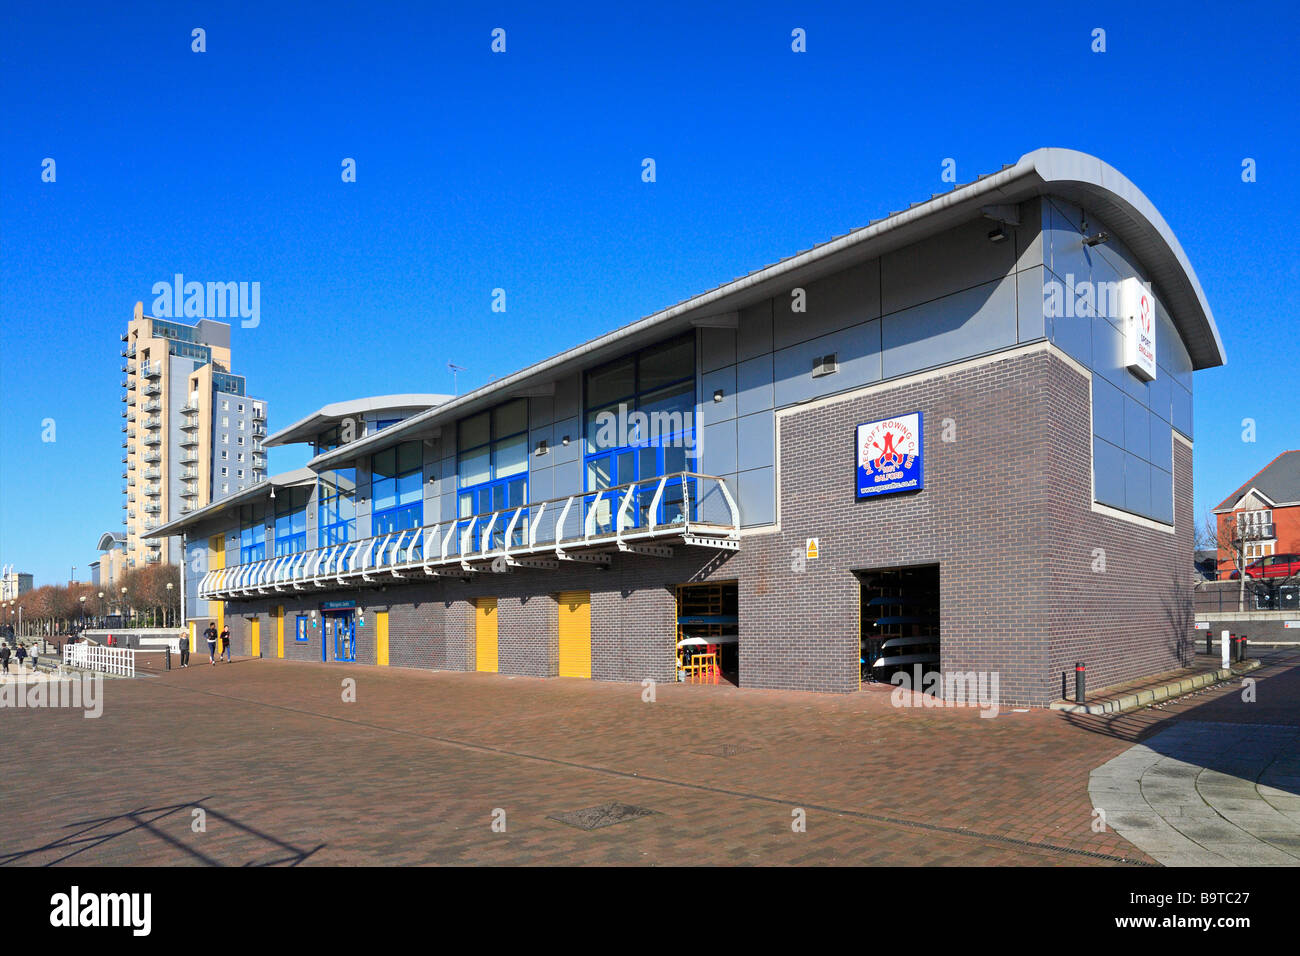 Watersports Centre, Salford Quays, Manchester, Lancashire, England, UK. - Stock Image